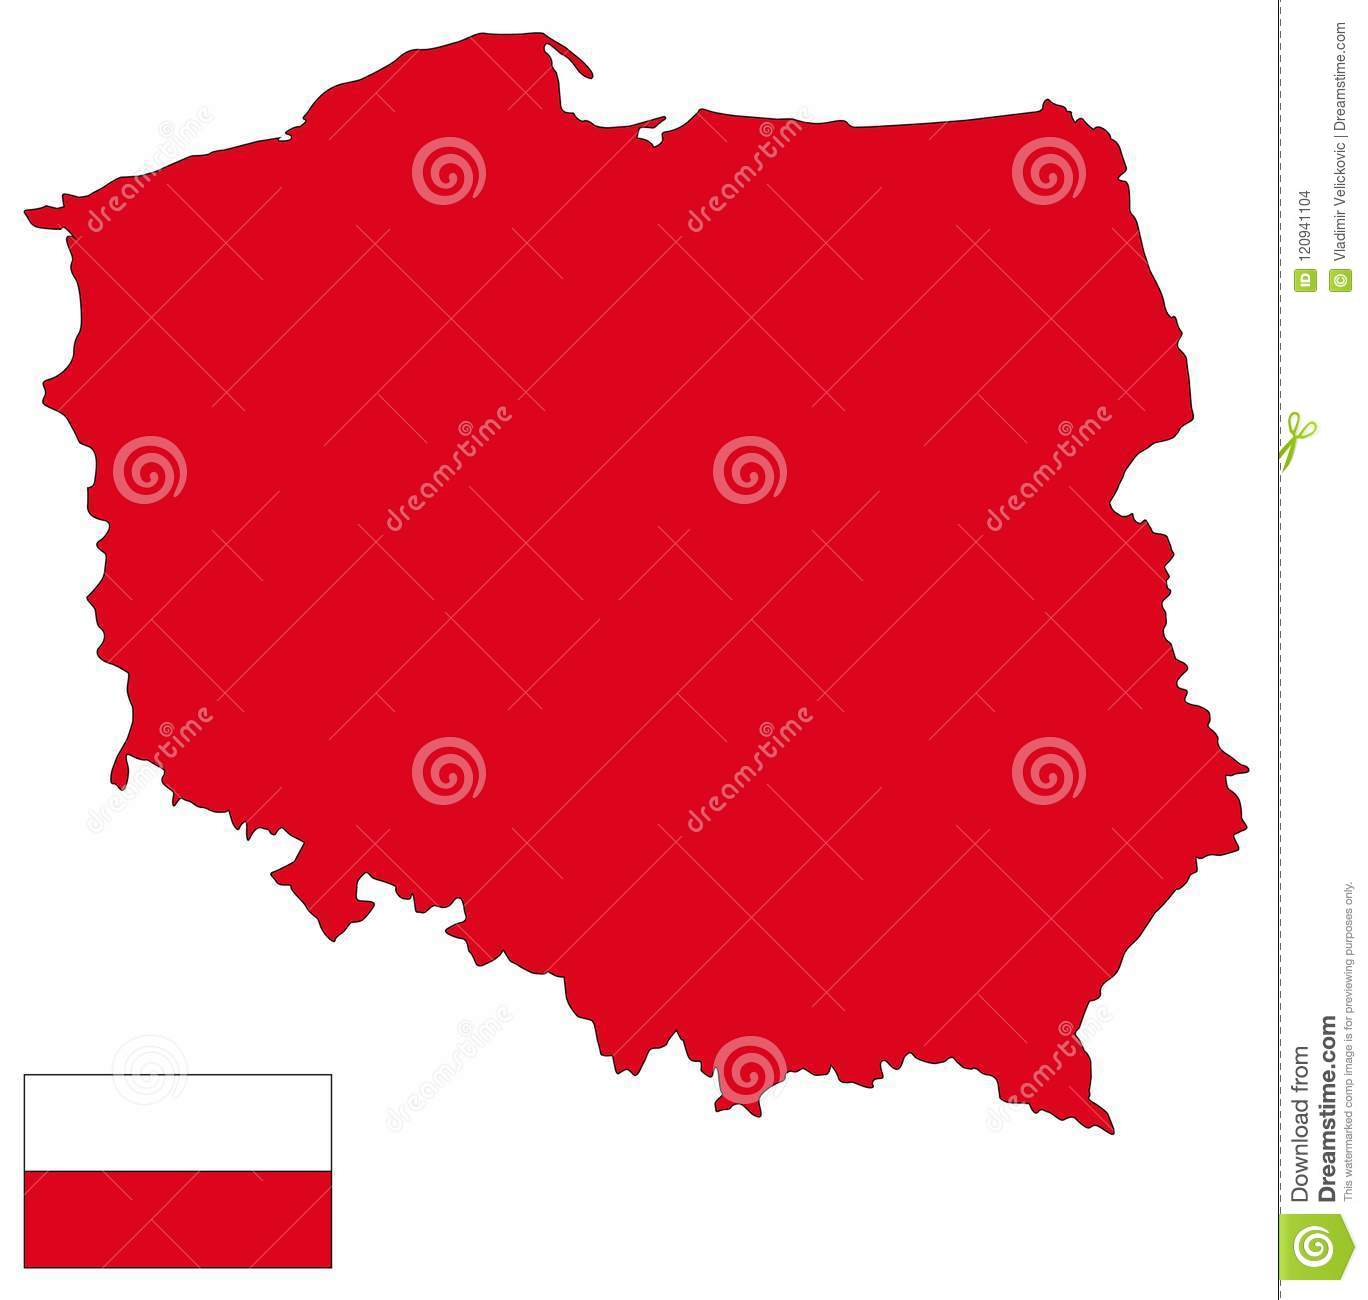 Poland Map And Flag - Country In Central Europe Stock Vector ...